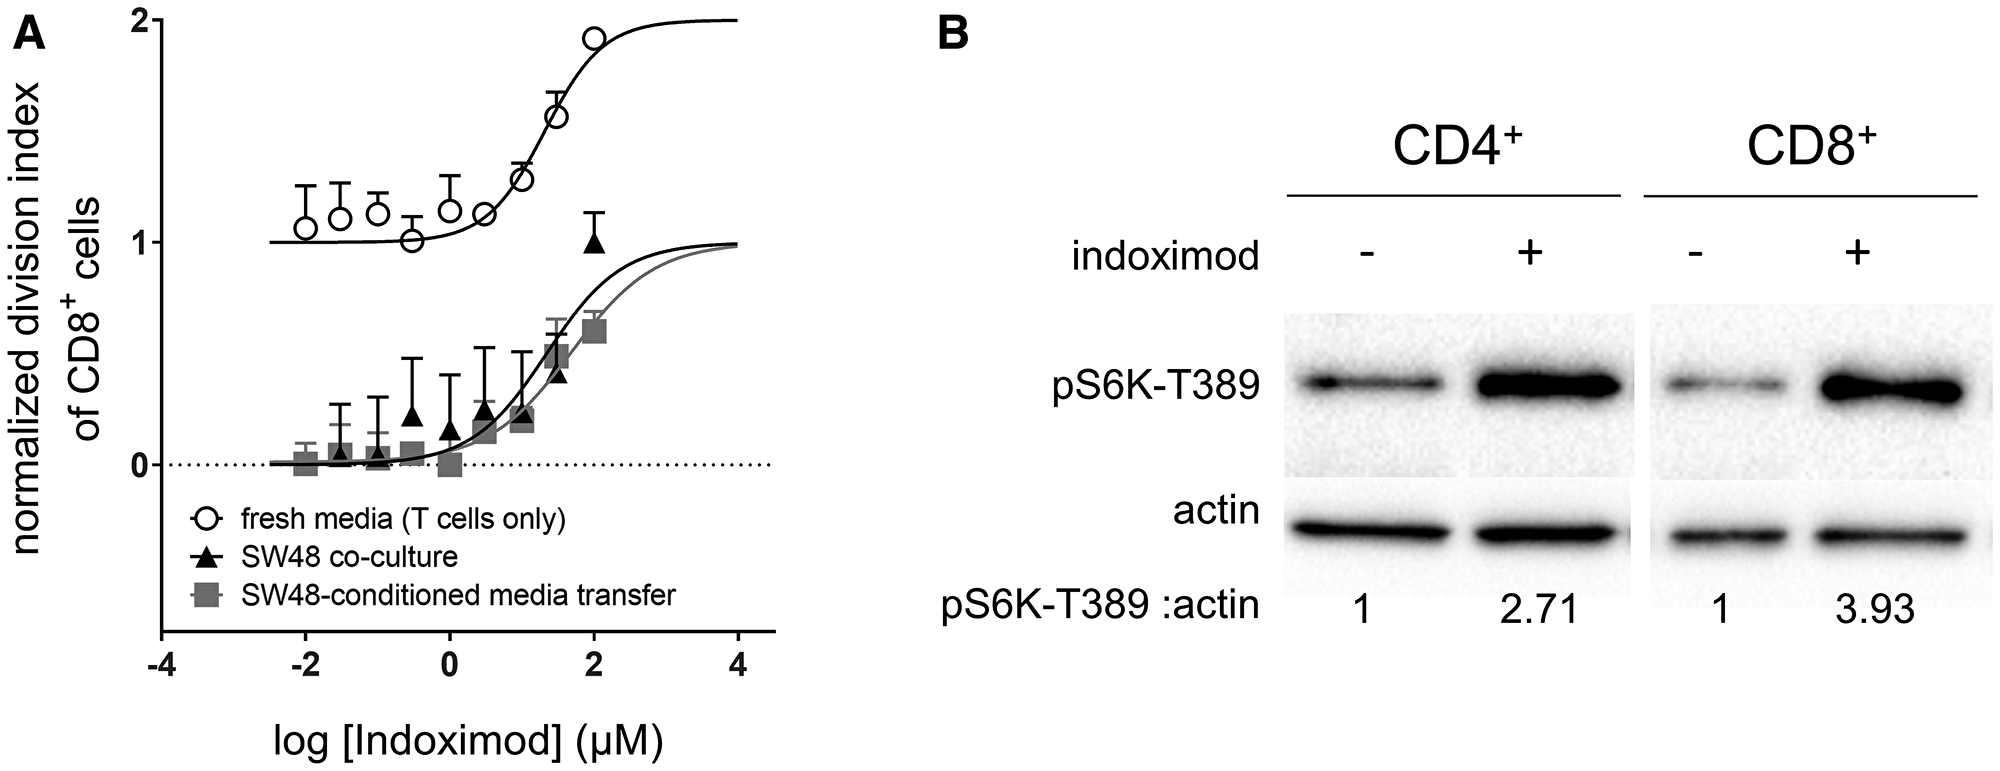 Indoximod augments CD8+ T cell proliferation in both nutrient depleted and nutrient replete conditions.